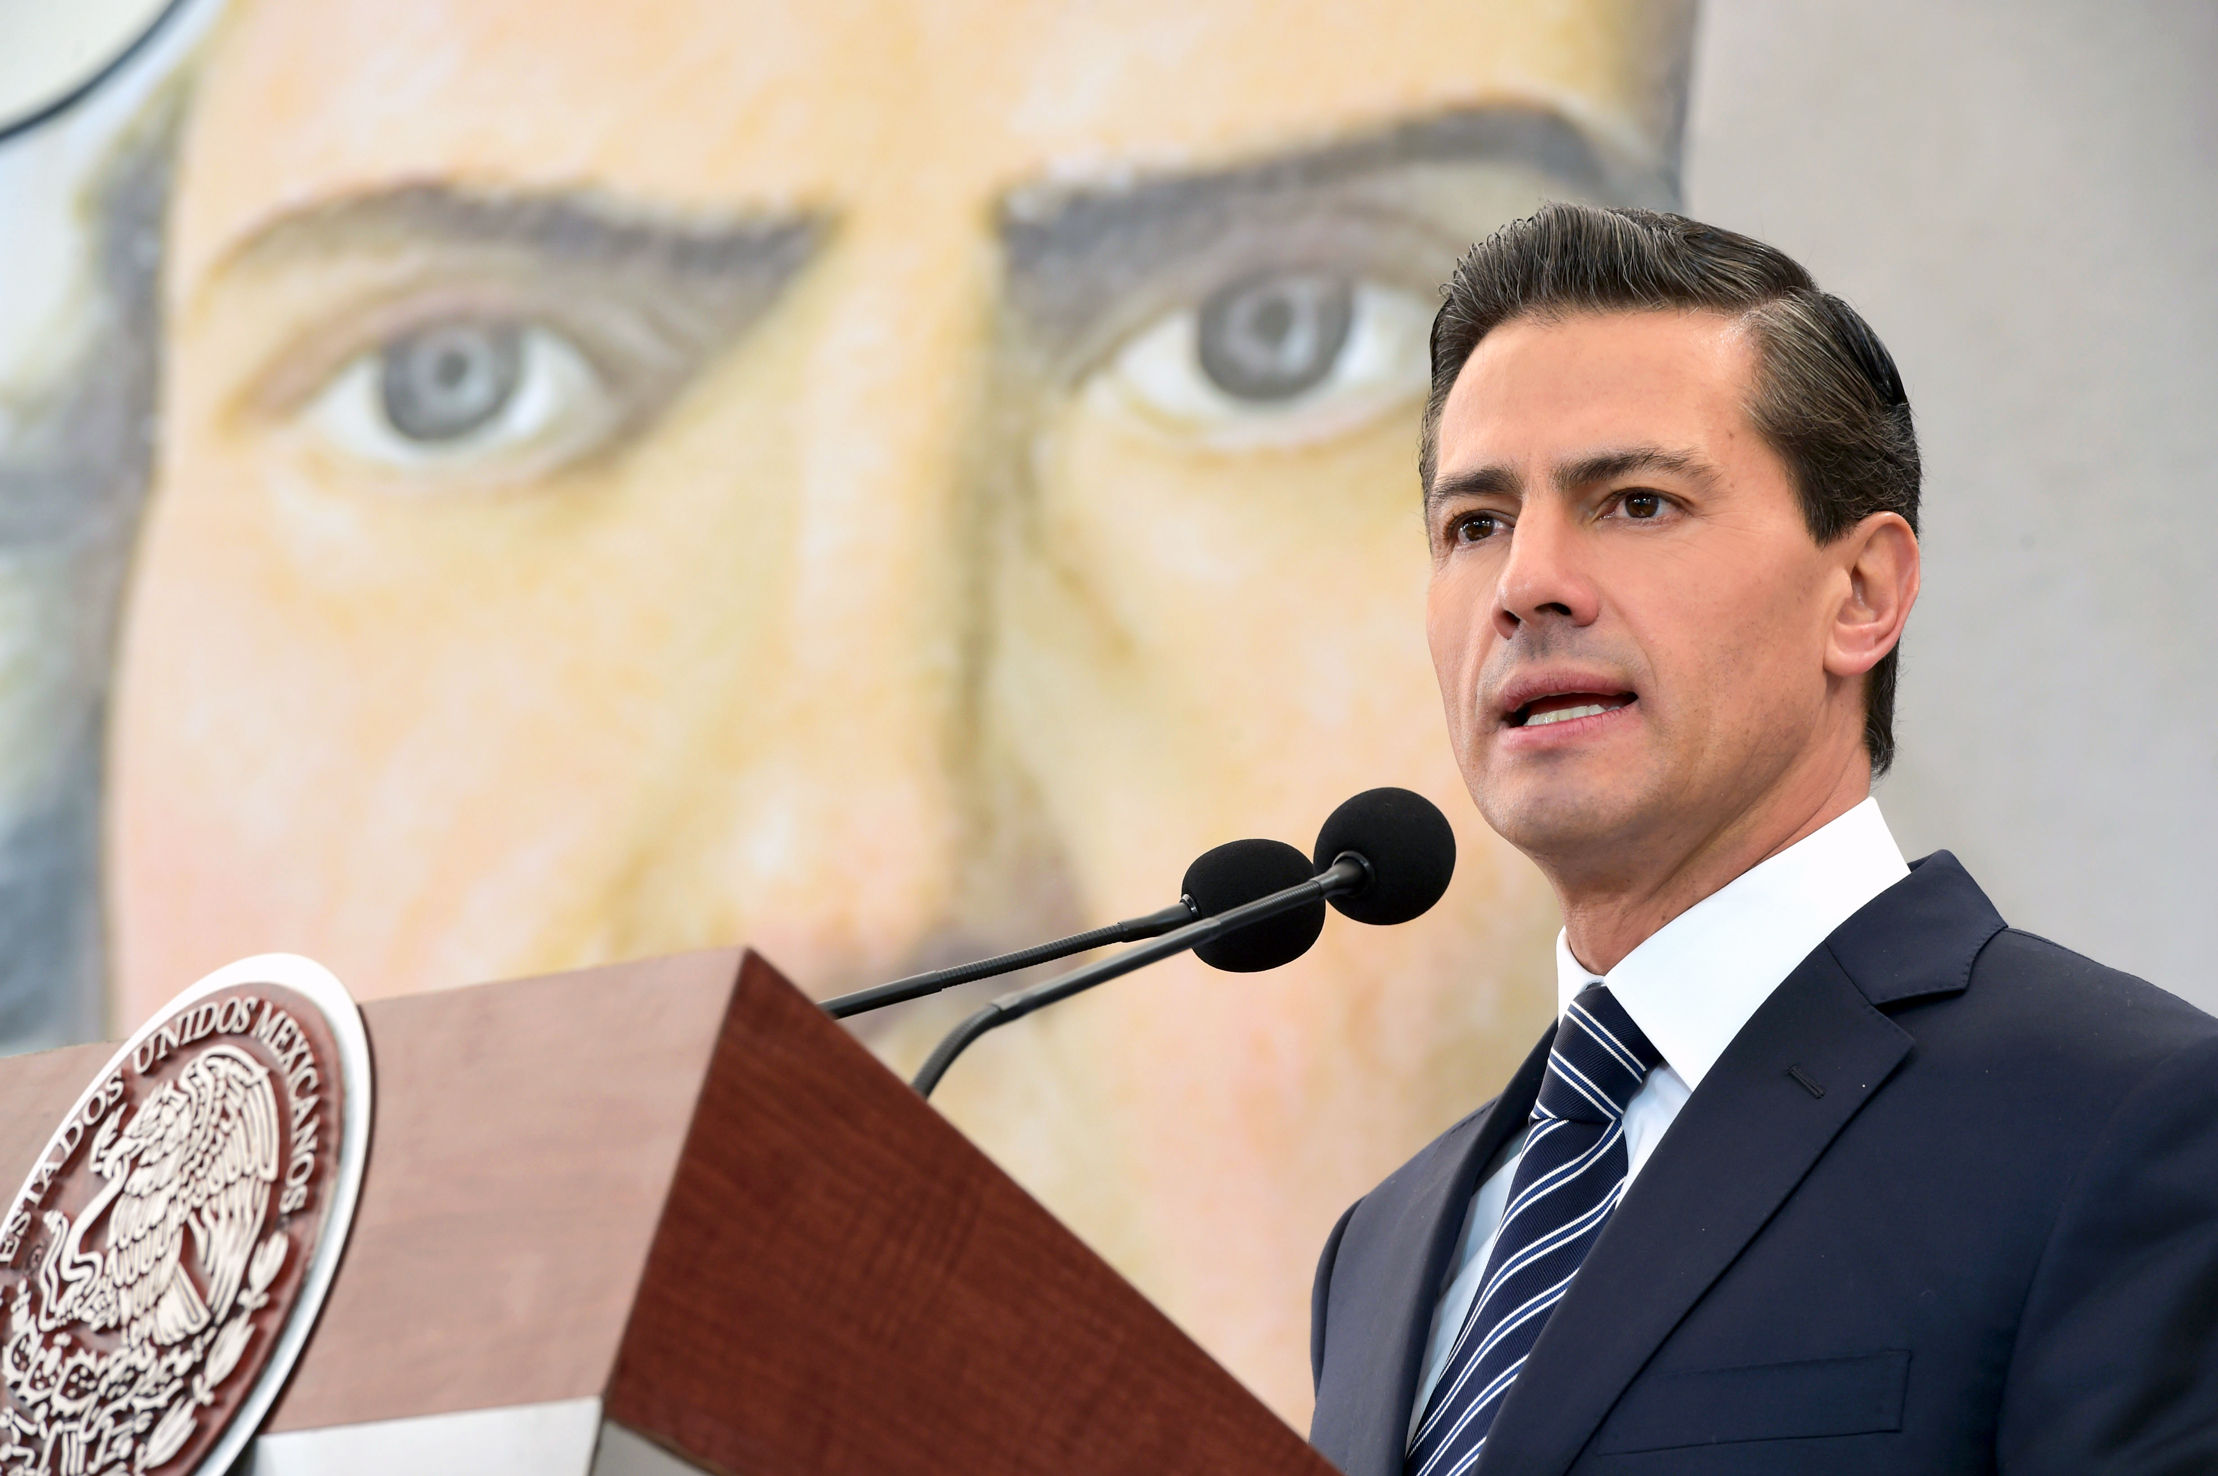 President Enrique Peña Nieto declared today that reducing inequality is one of the biggest challenges facing Mexico and the world at the beginning of the 21st century.